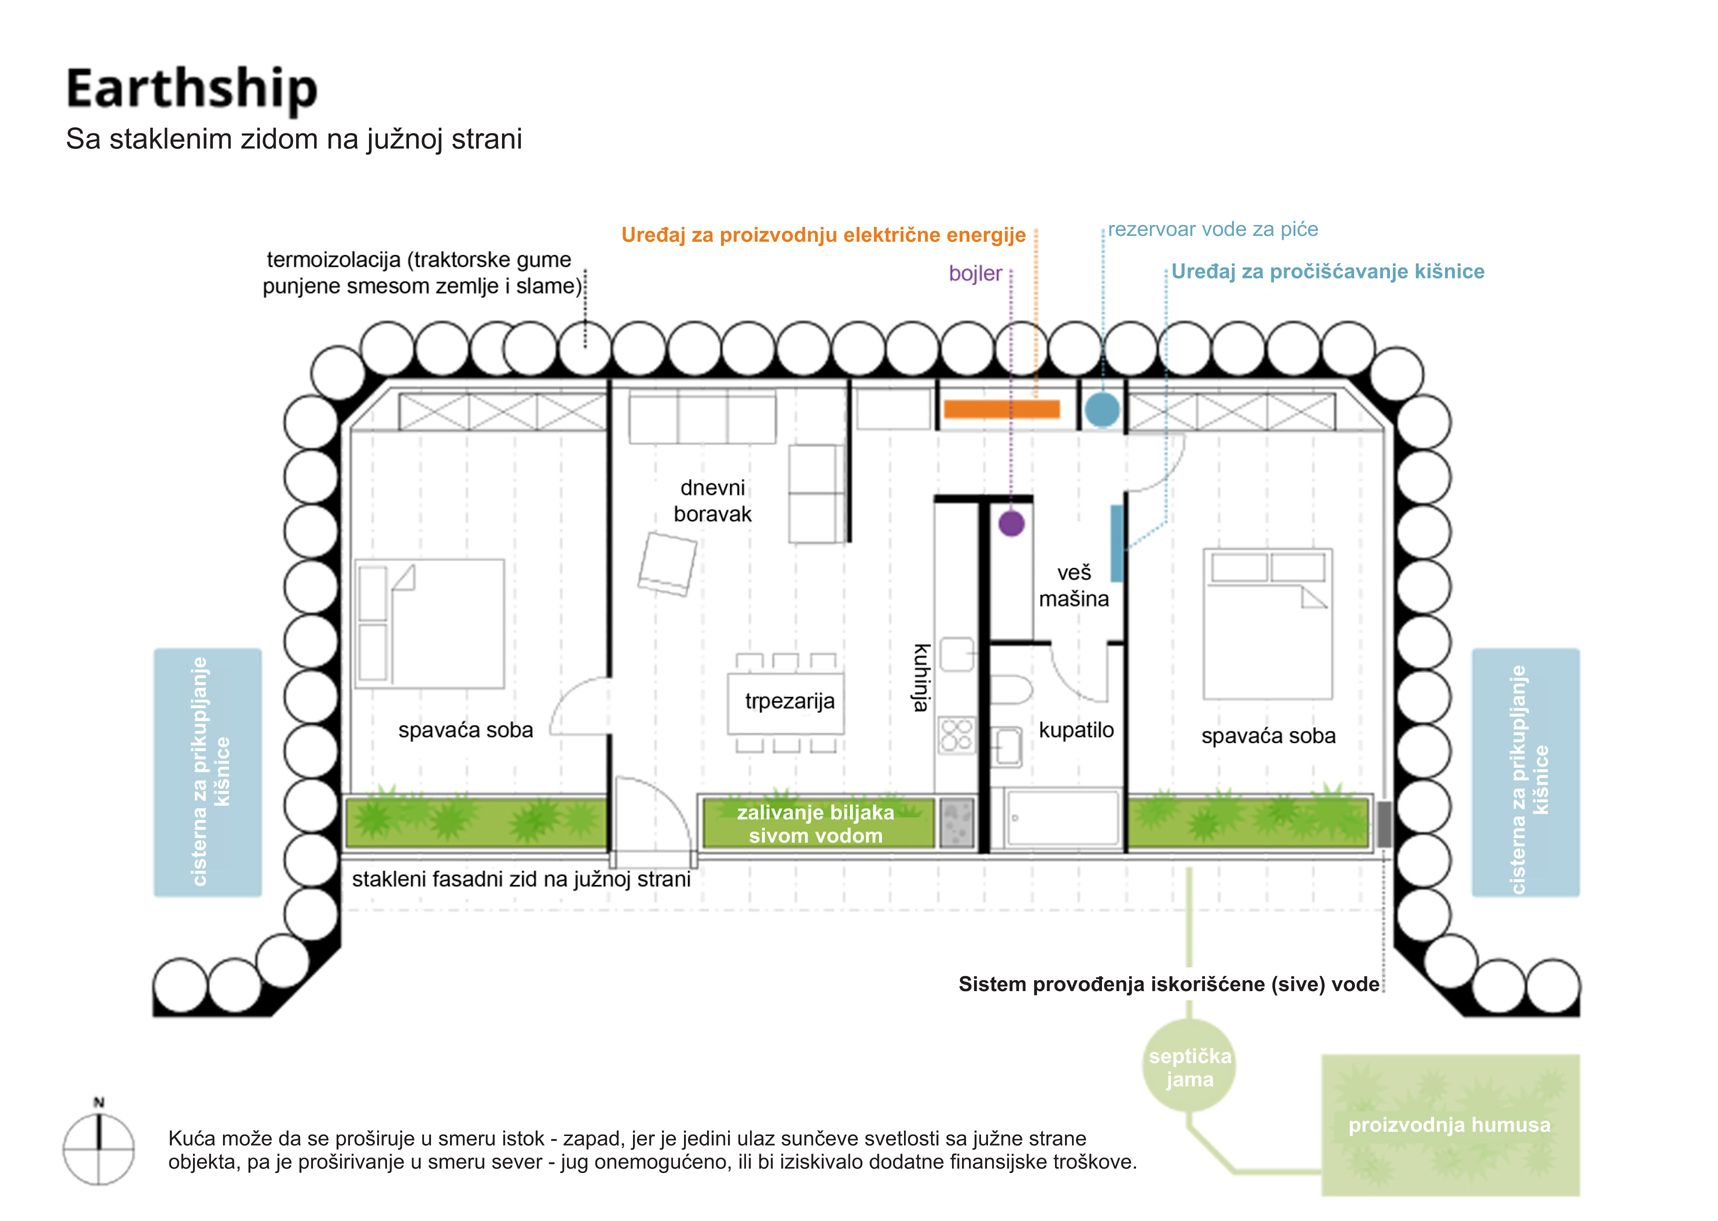 Earthship plans and designs pictures - Earthship Osnova Earthship Planssouthern